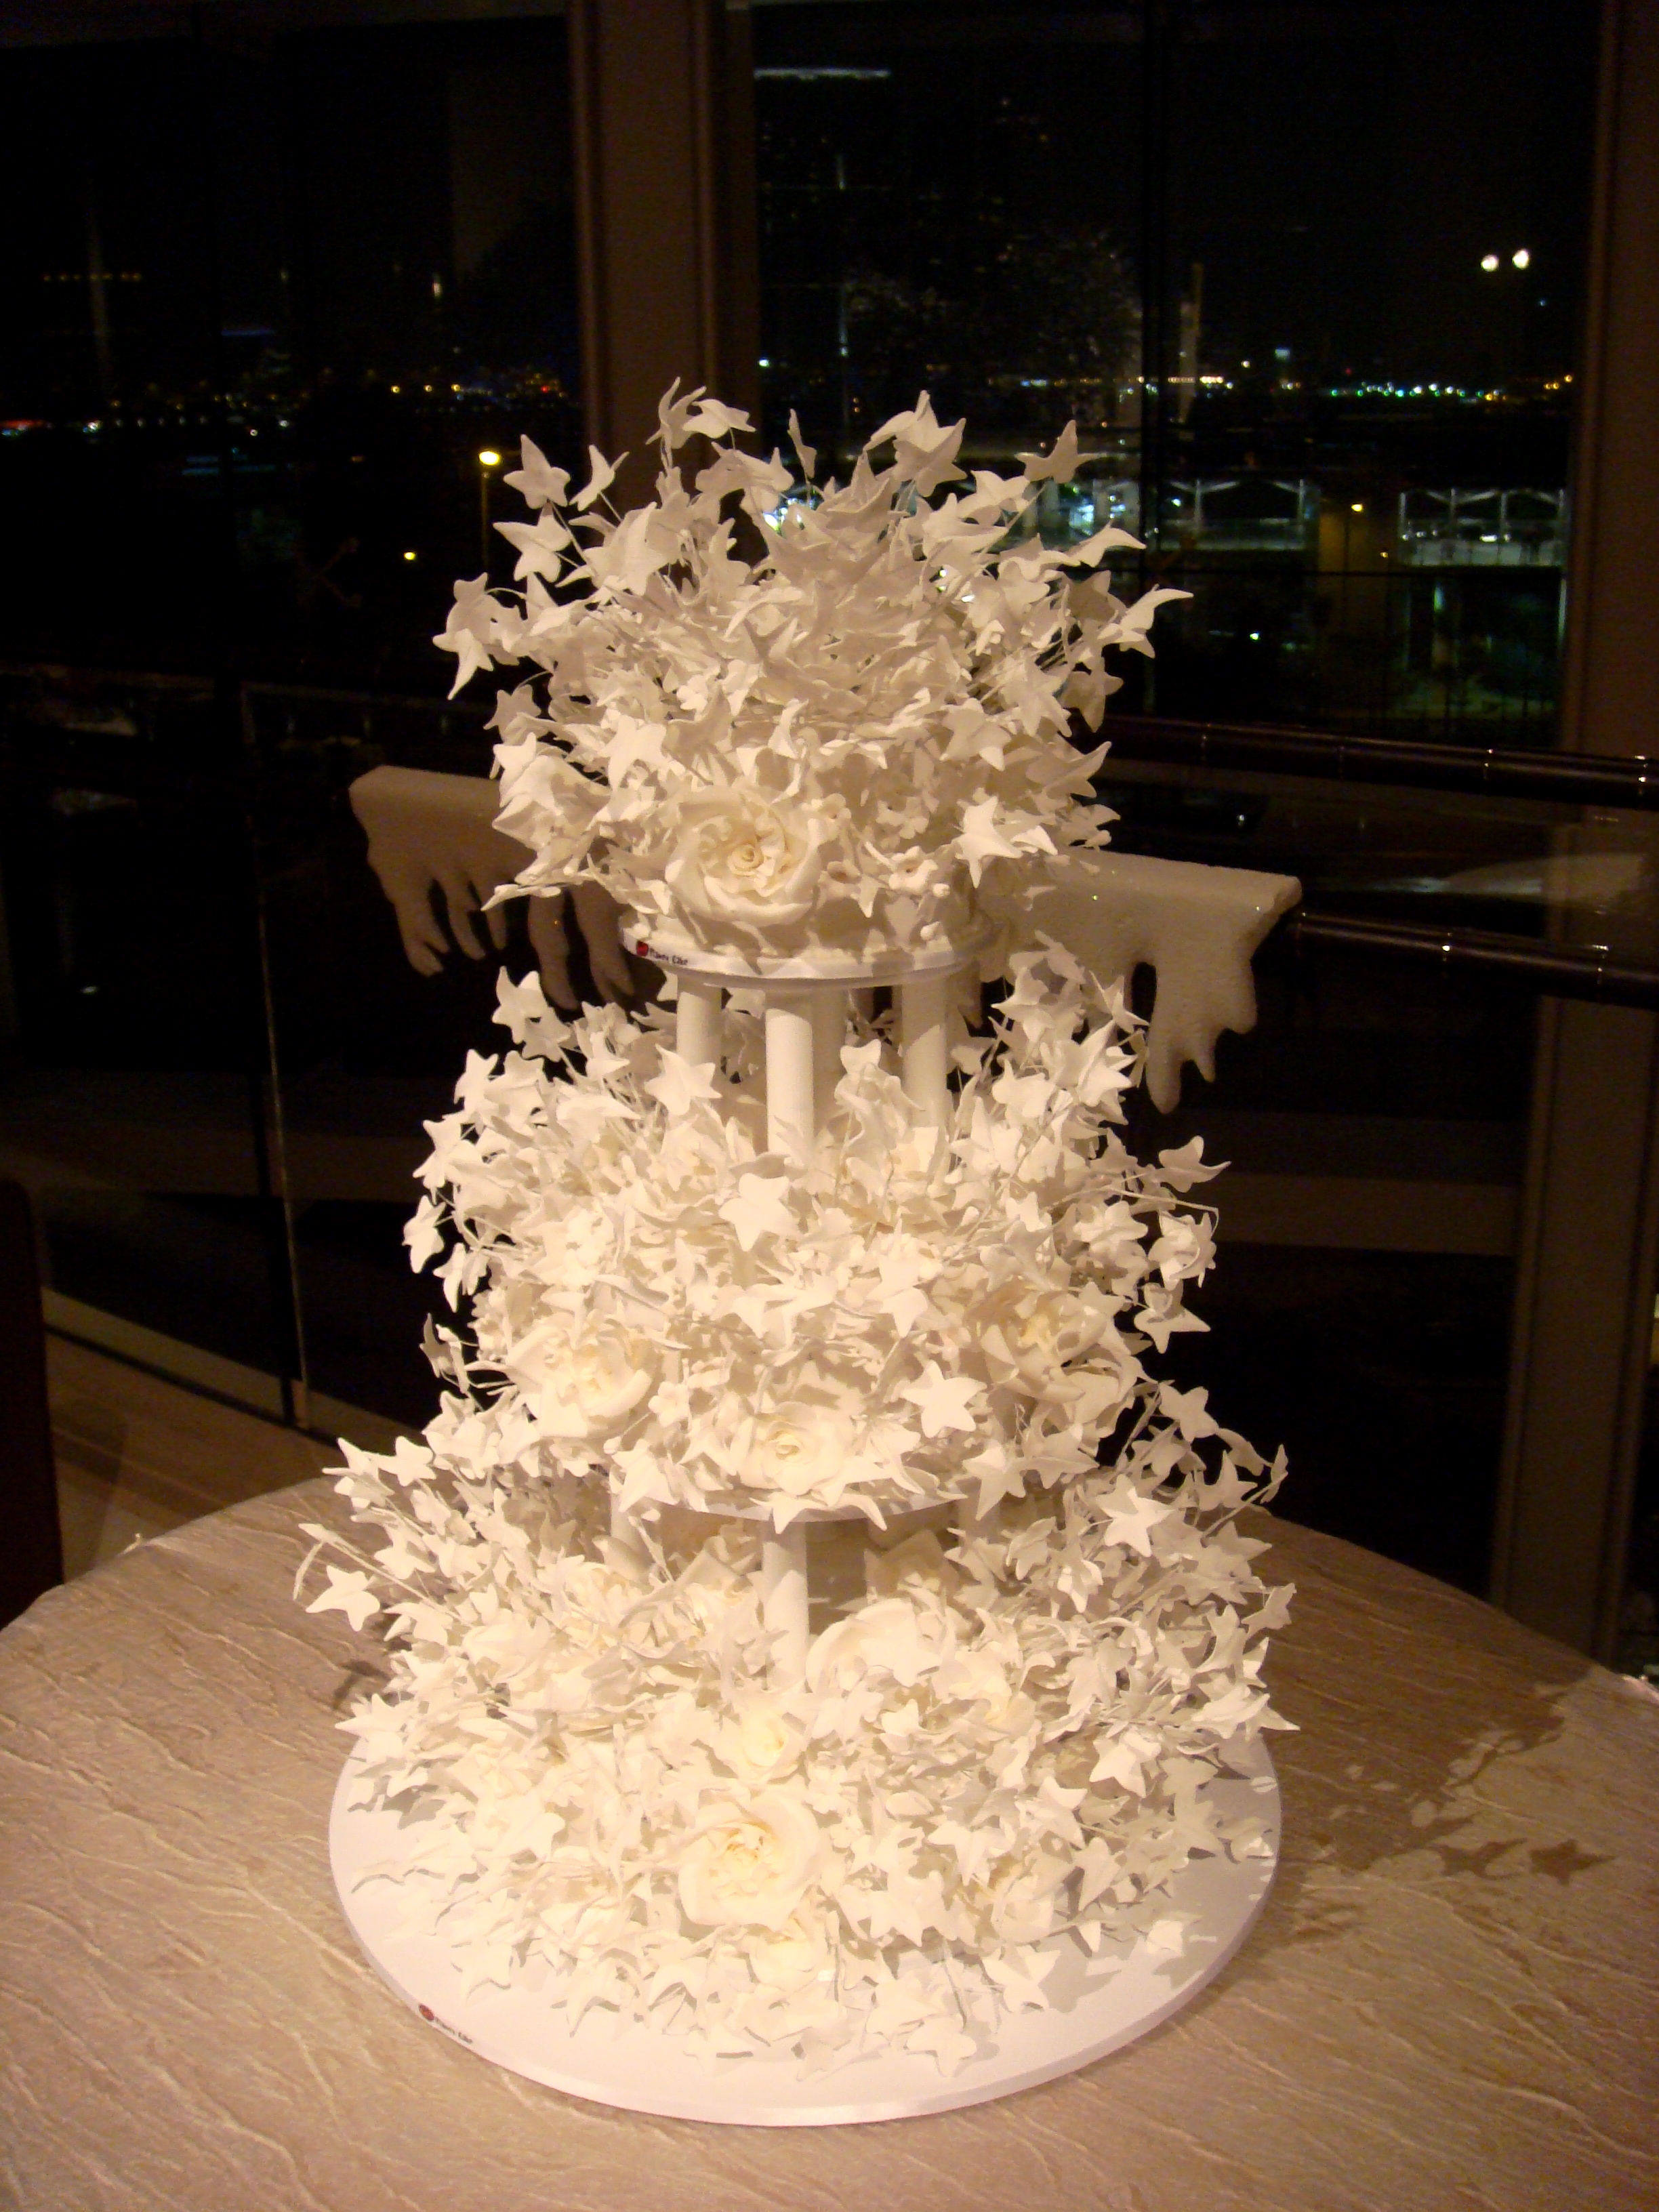 Wedding Cake By dion gillard (originally posted to Flickr as Amazing Cake...) [CC BY 2.0  via Wikimedia Commons]